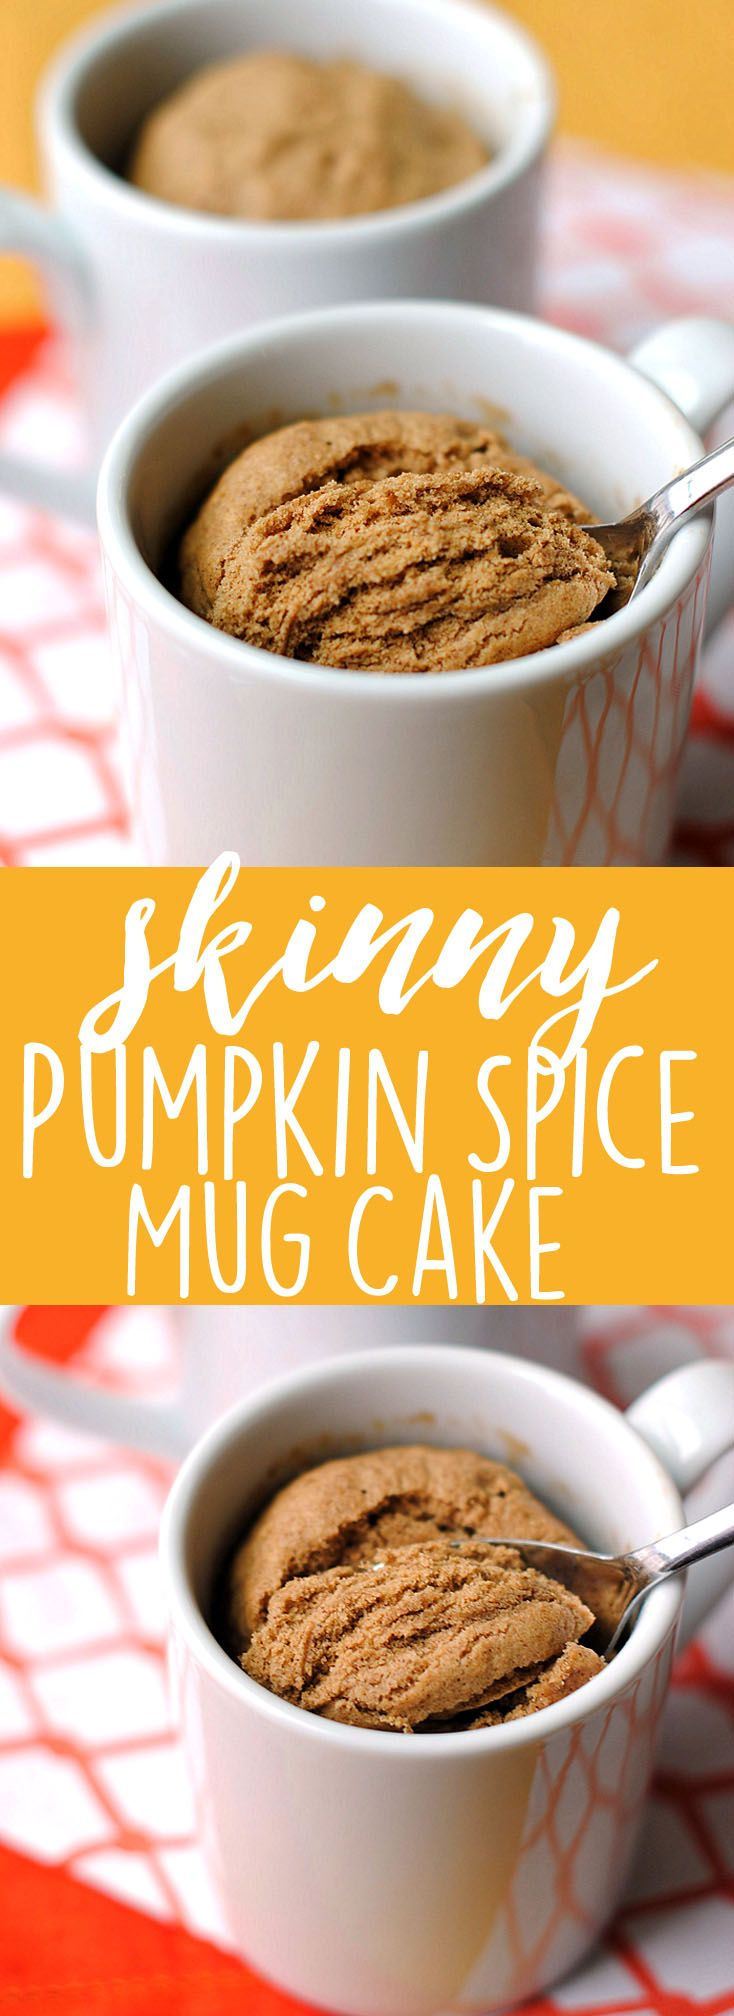 Skinny Pumpkin Spice Mug Cake - fat-free and under 200 calories! | Eat Yourself Skinny